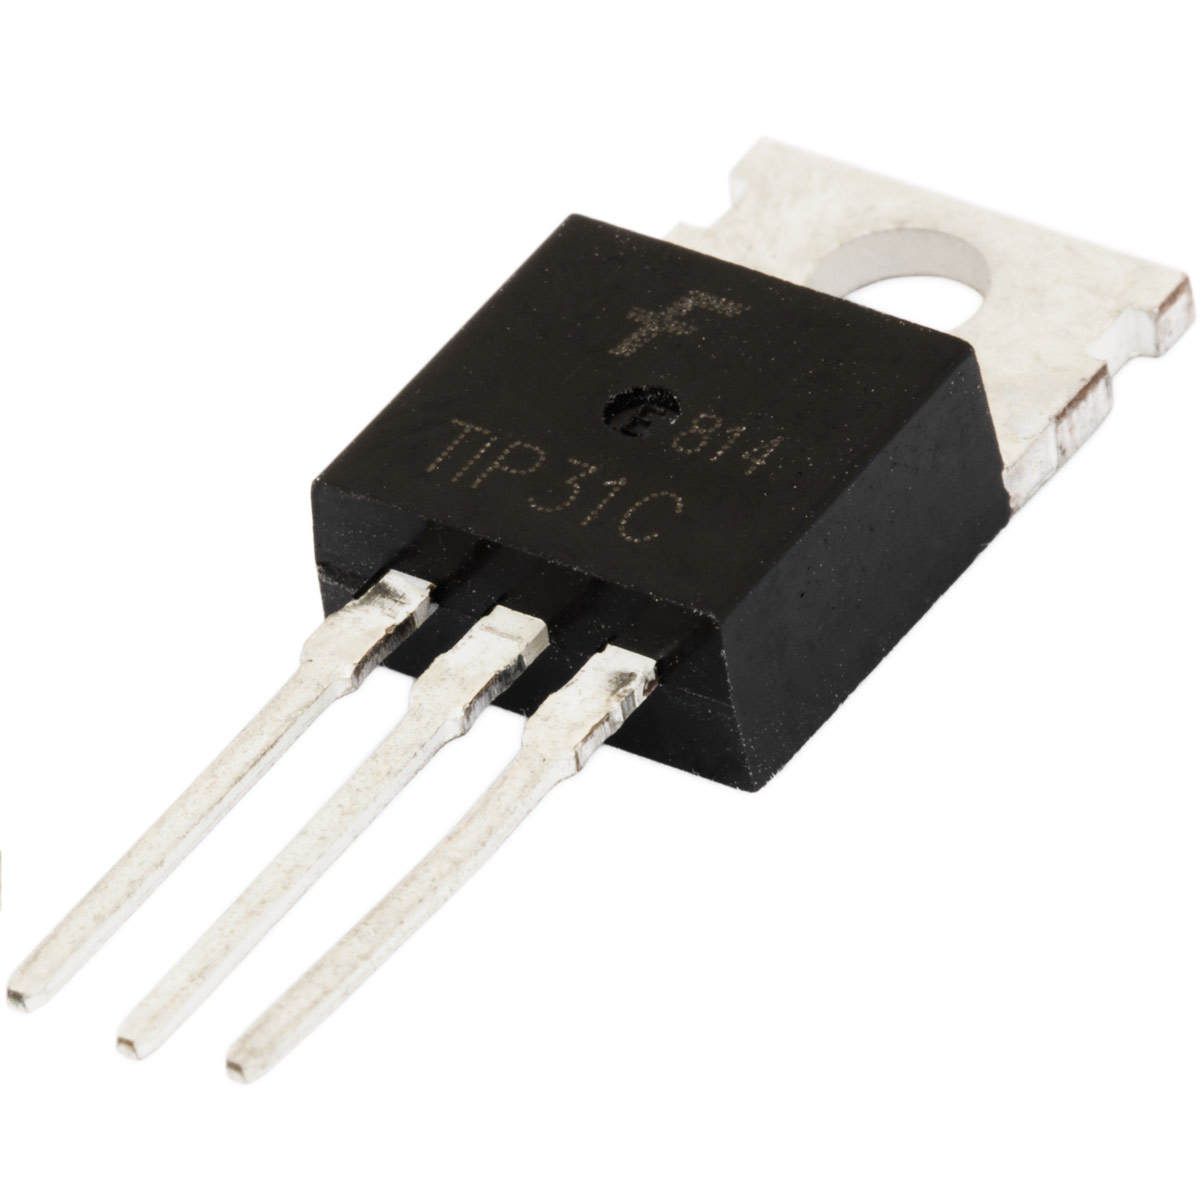 TIP31 Medium Power Linear Switching NPN transistor ...